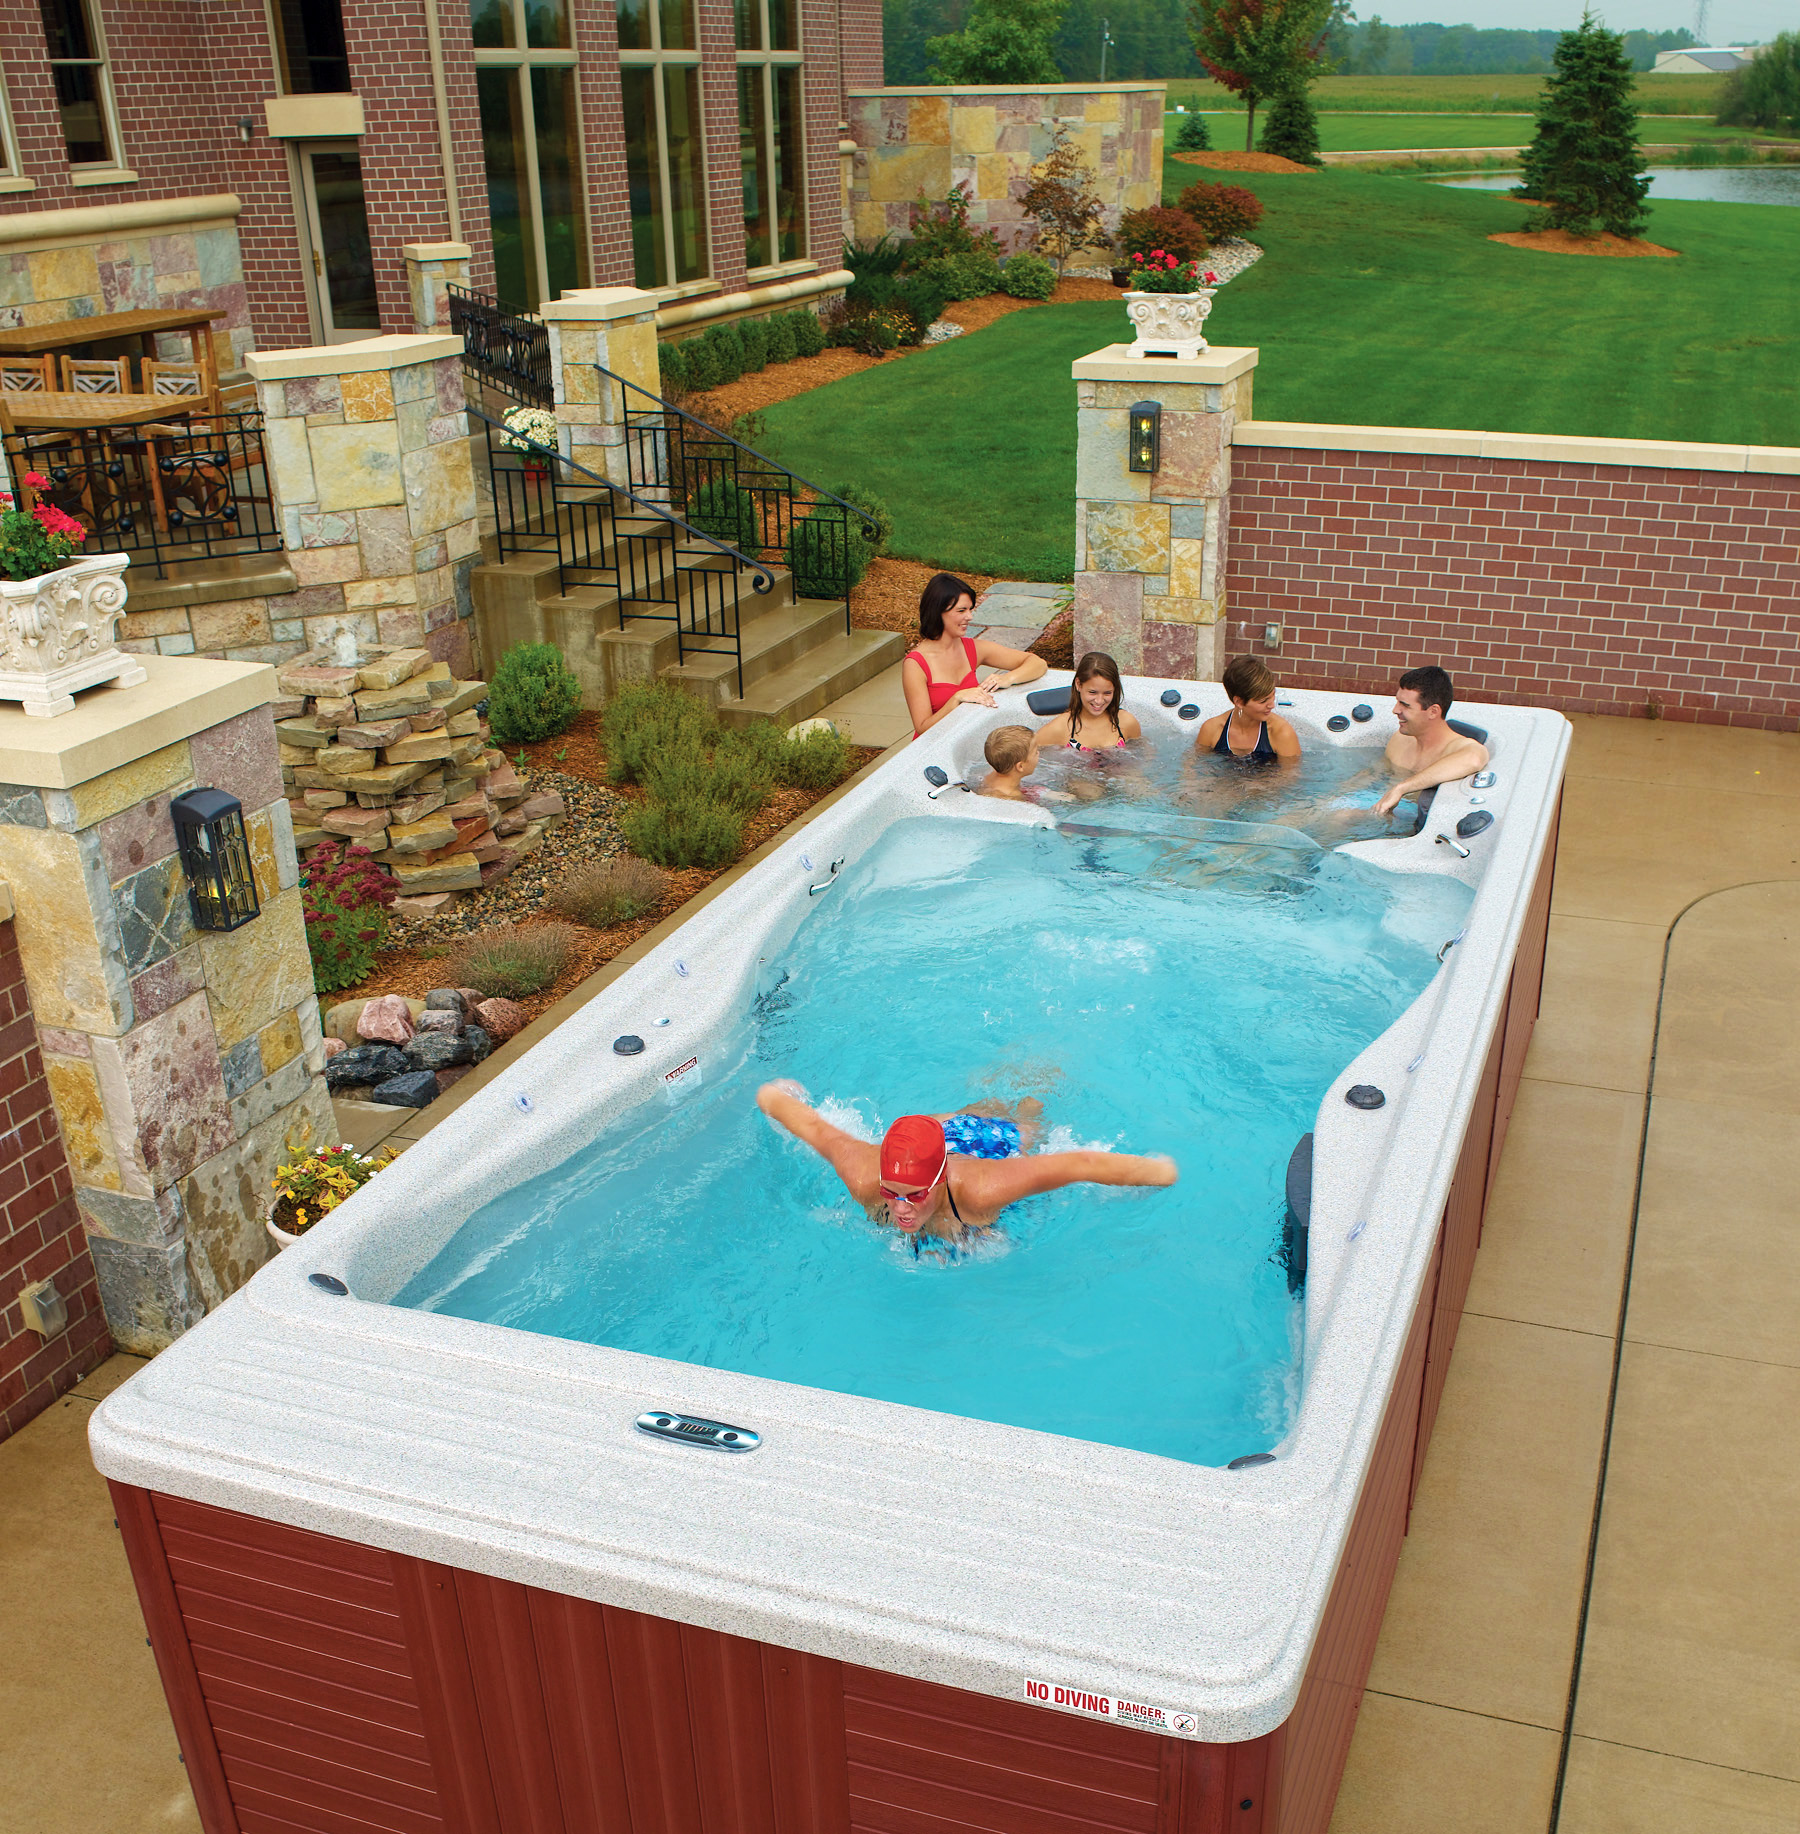 Swim spas spas and more - Swimming pool swimming pool swimming pool ...